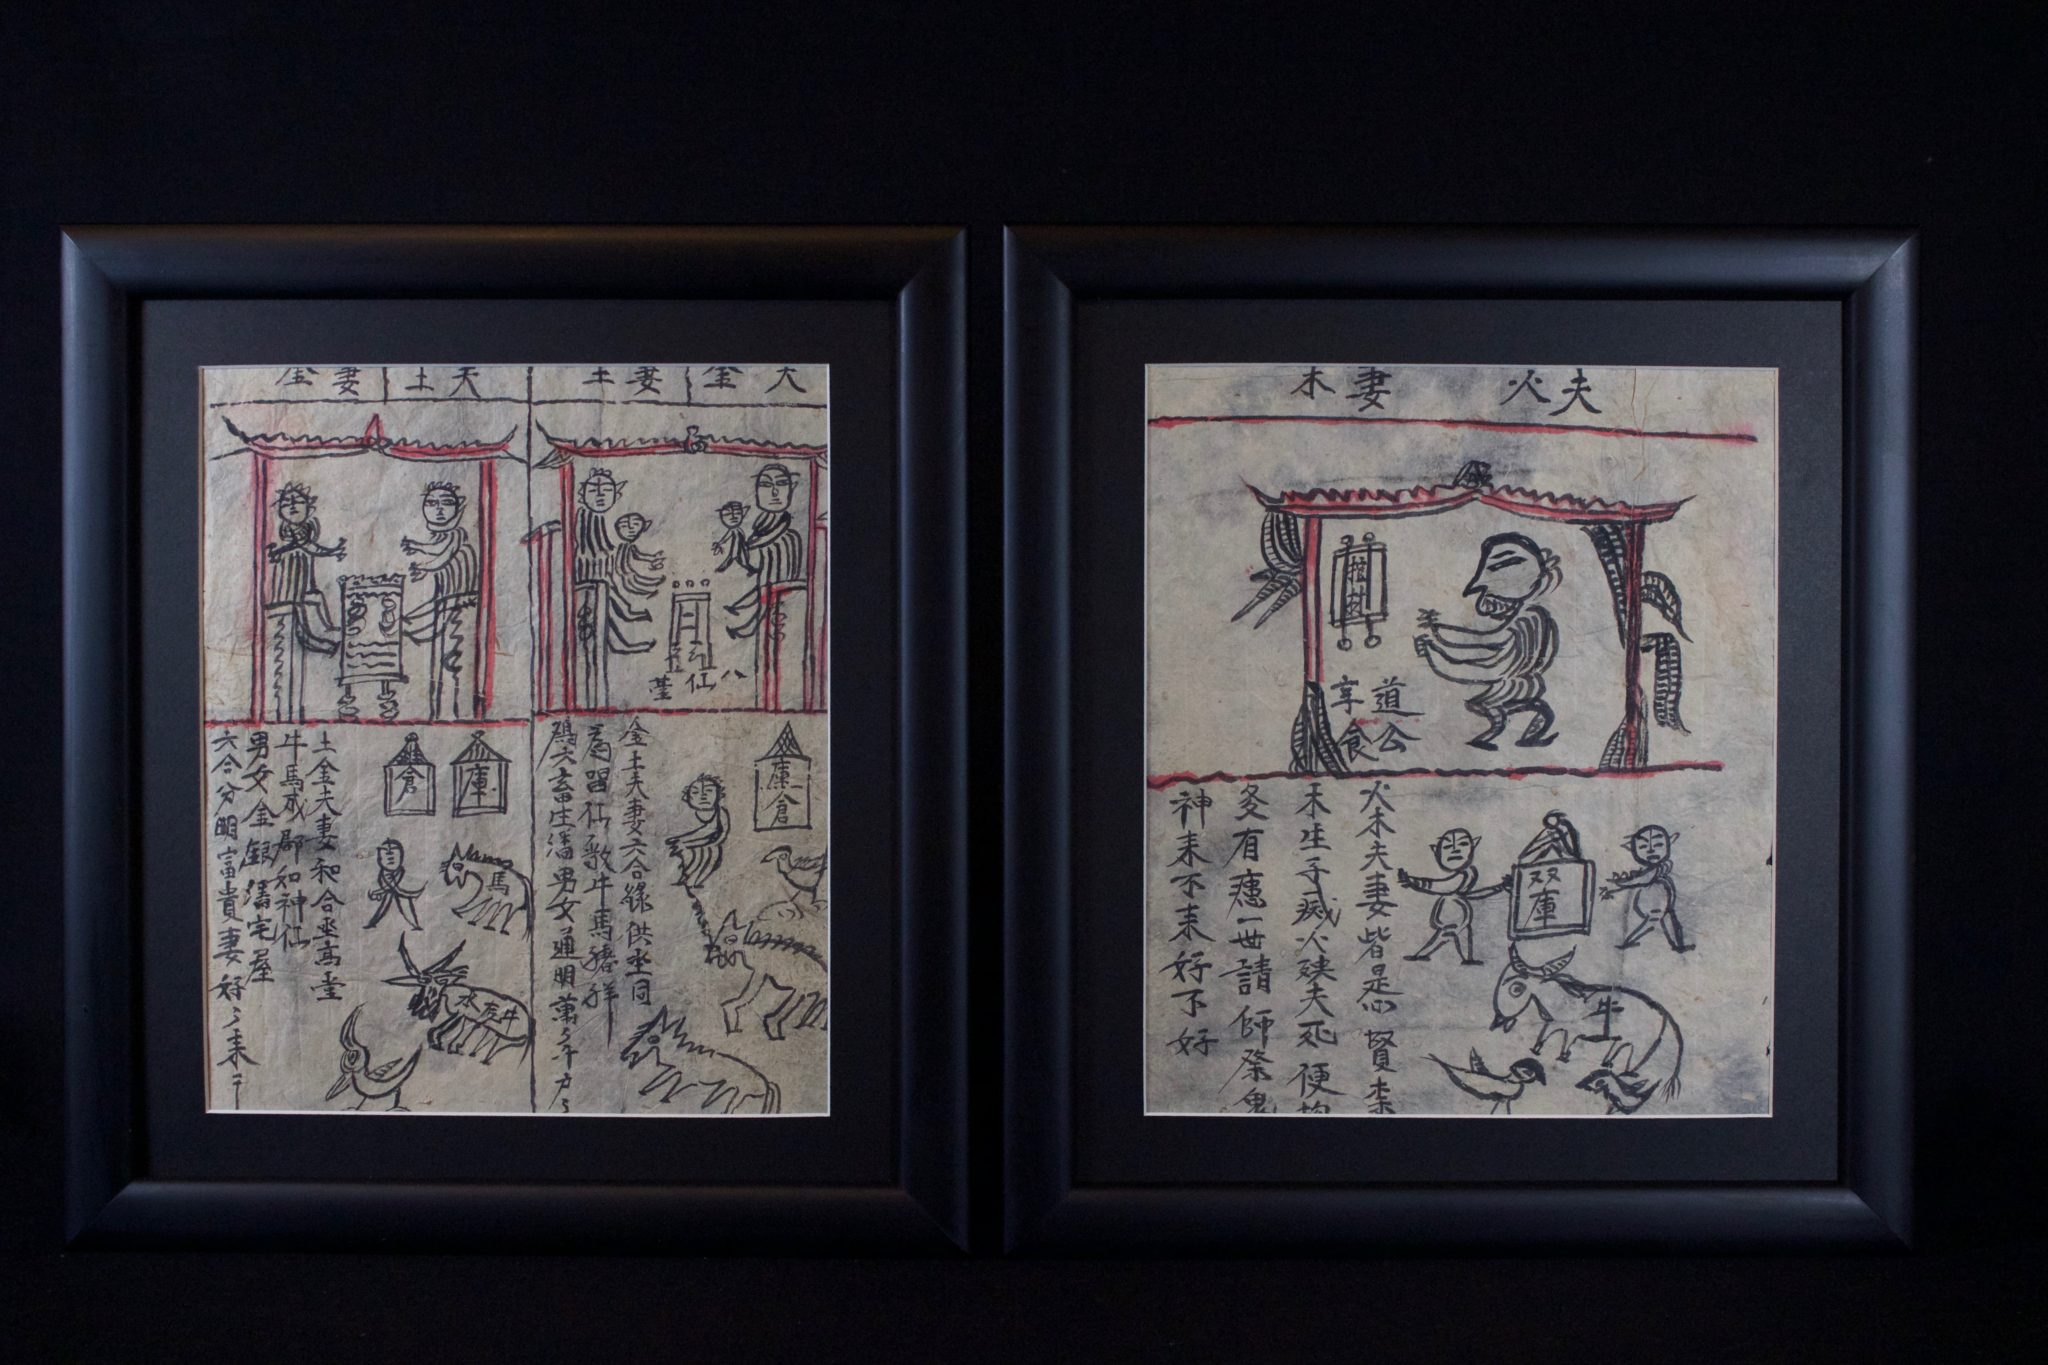 """Pages from Shaman's Personal Instructional Book, Cao Bang province, Vietnam, Red Yao people Early 20th c, Ink on handmade mulberry paper (tapa), Written in Nom (Chinese characters adapted to Vietnamese), books are an integral part of a shaman's repertoire. They range from explanations of various rituals and use of objects, to astrology, history, songs, laws, etiquette, children's tales, hunting practices, formulas, spells and feng shui. Shaman make their own books to help store their knowledge therefore no two are alike and a high level shaman will have a large library. 12"""" x 11"""" x ½"""" (framed), $120. each"""